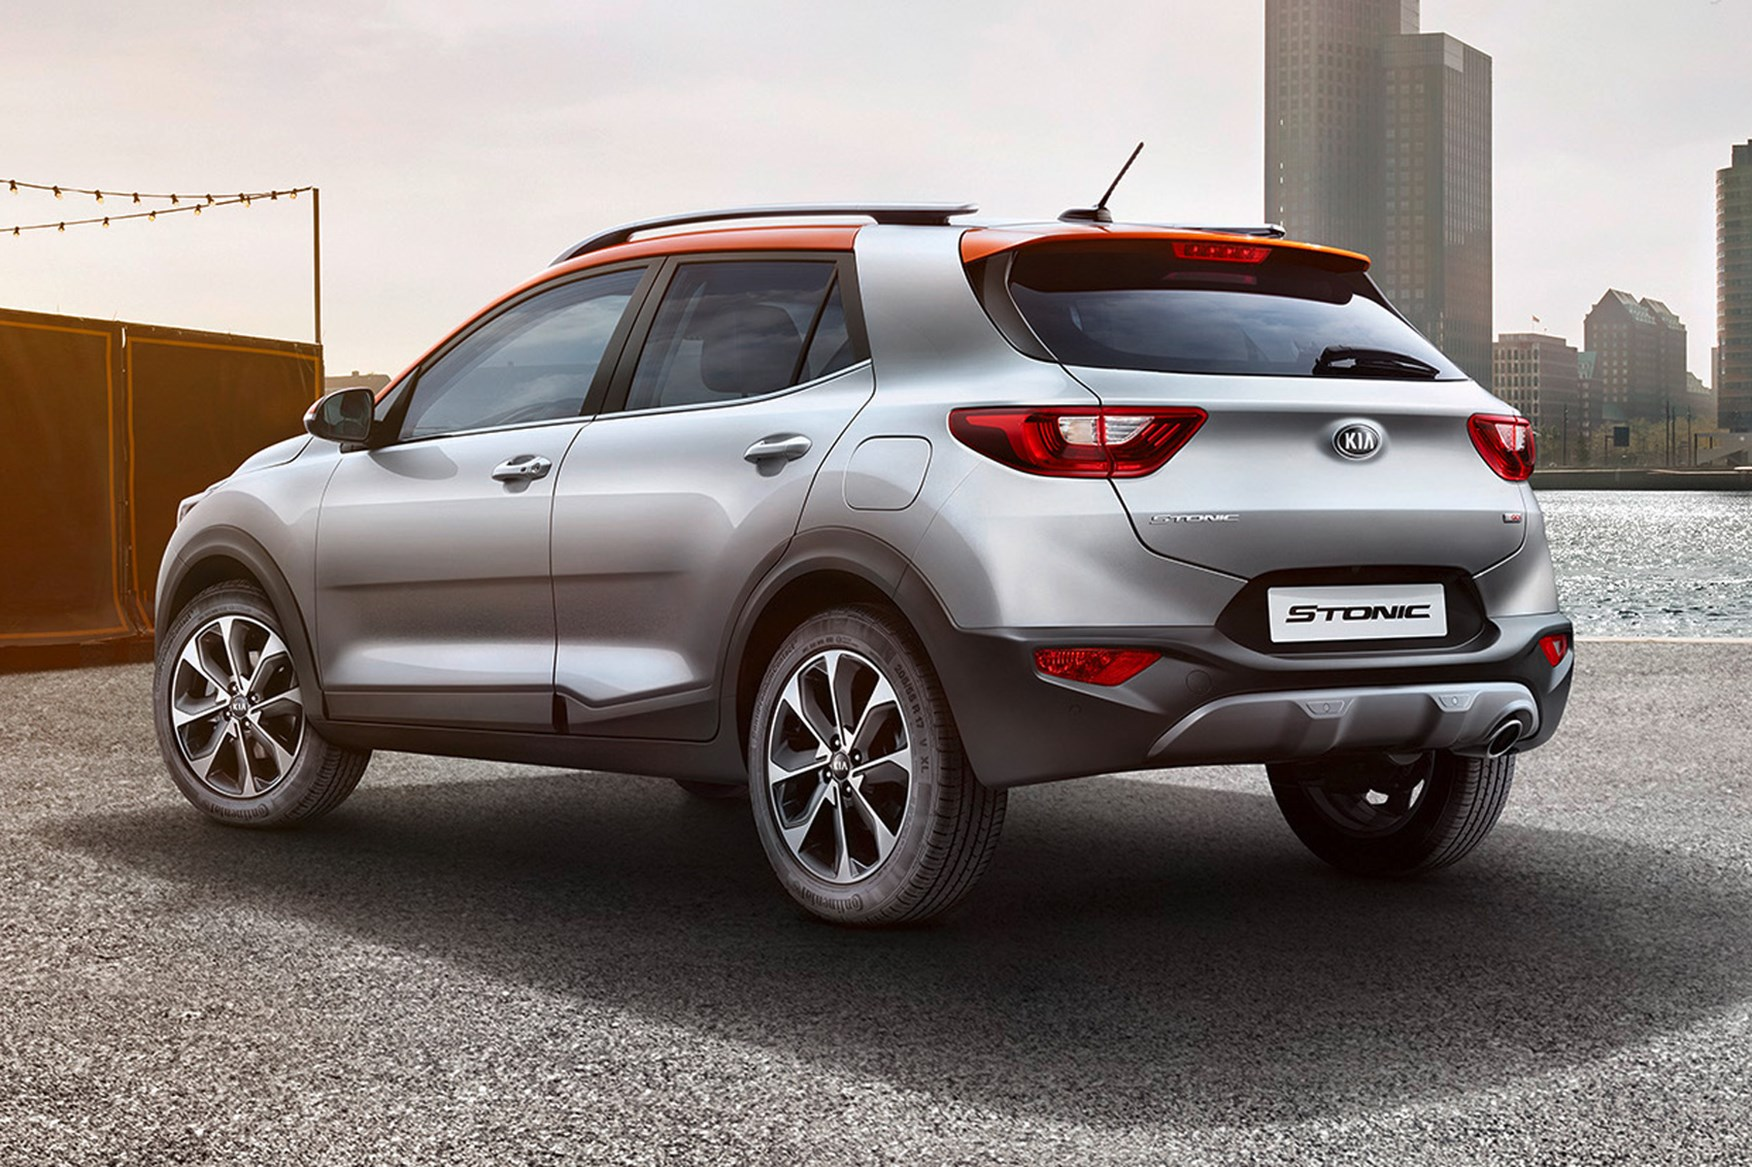 Stonic boom: new Kia Stonic joins the compact crossover club by CAR Magazine